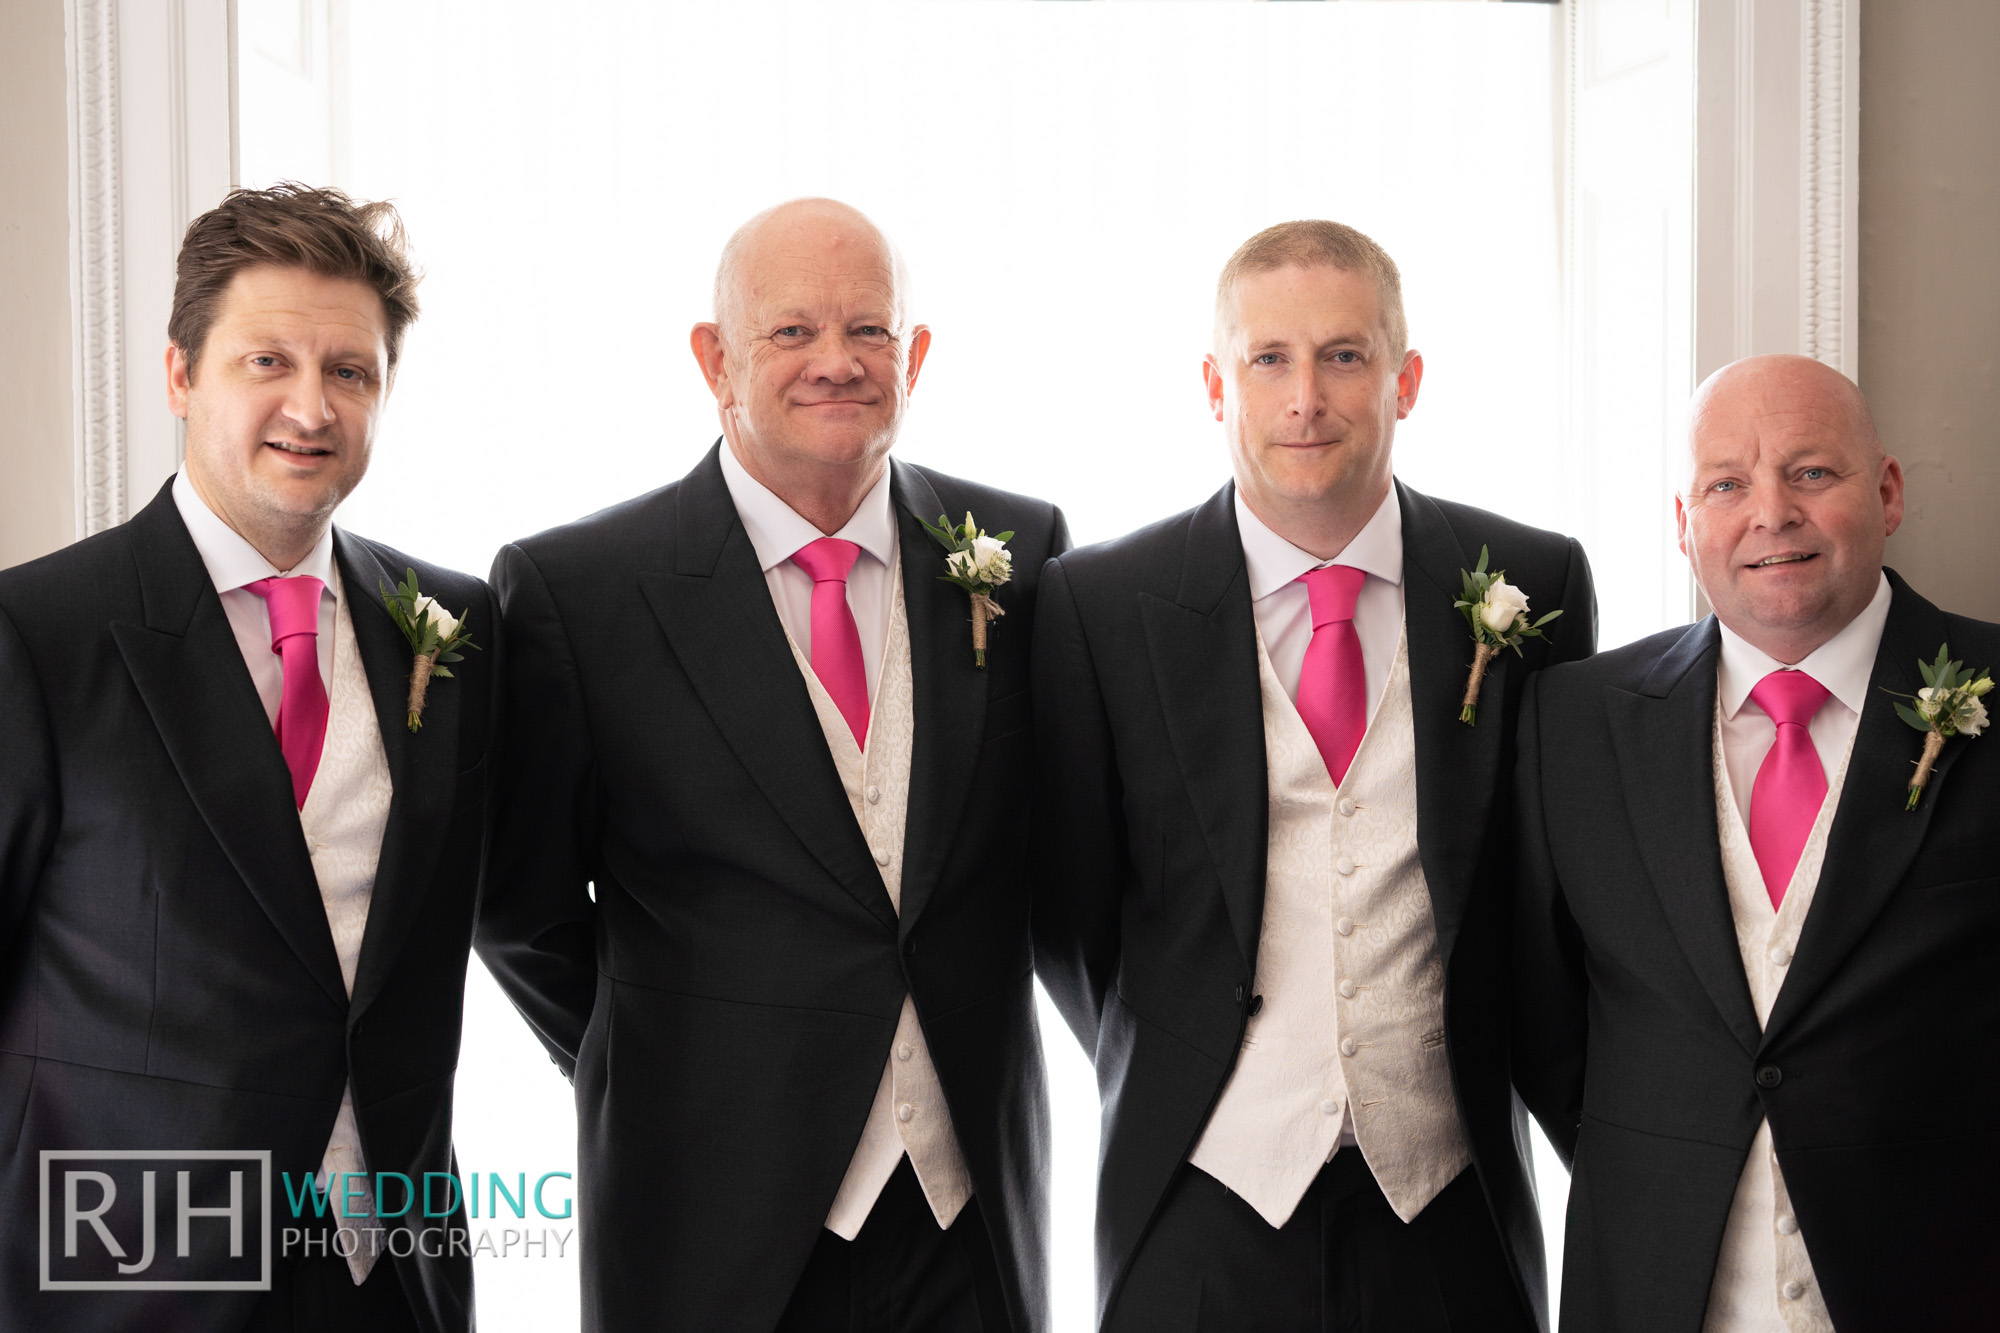 Aston Hall Wedding Photography - Whitby Wedding Preview_009_DSB09284.jpg